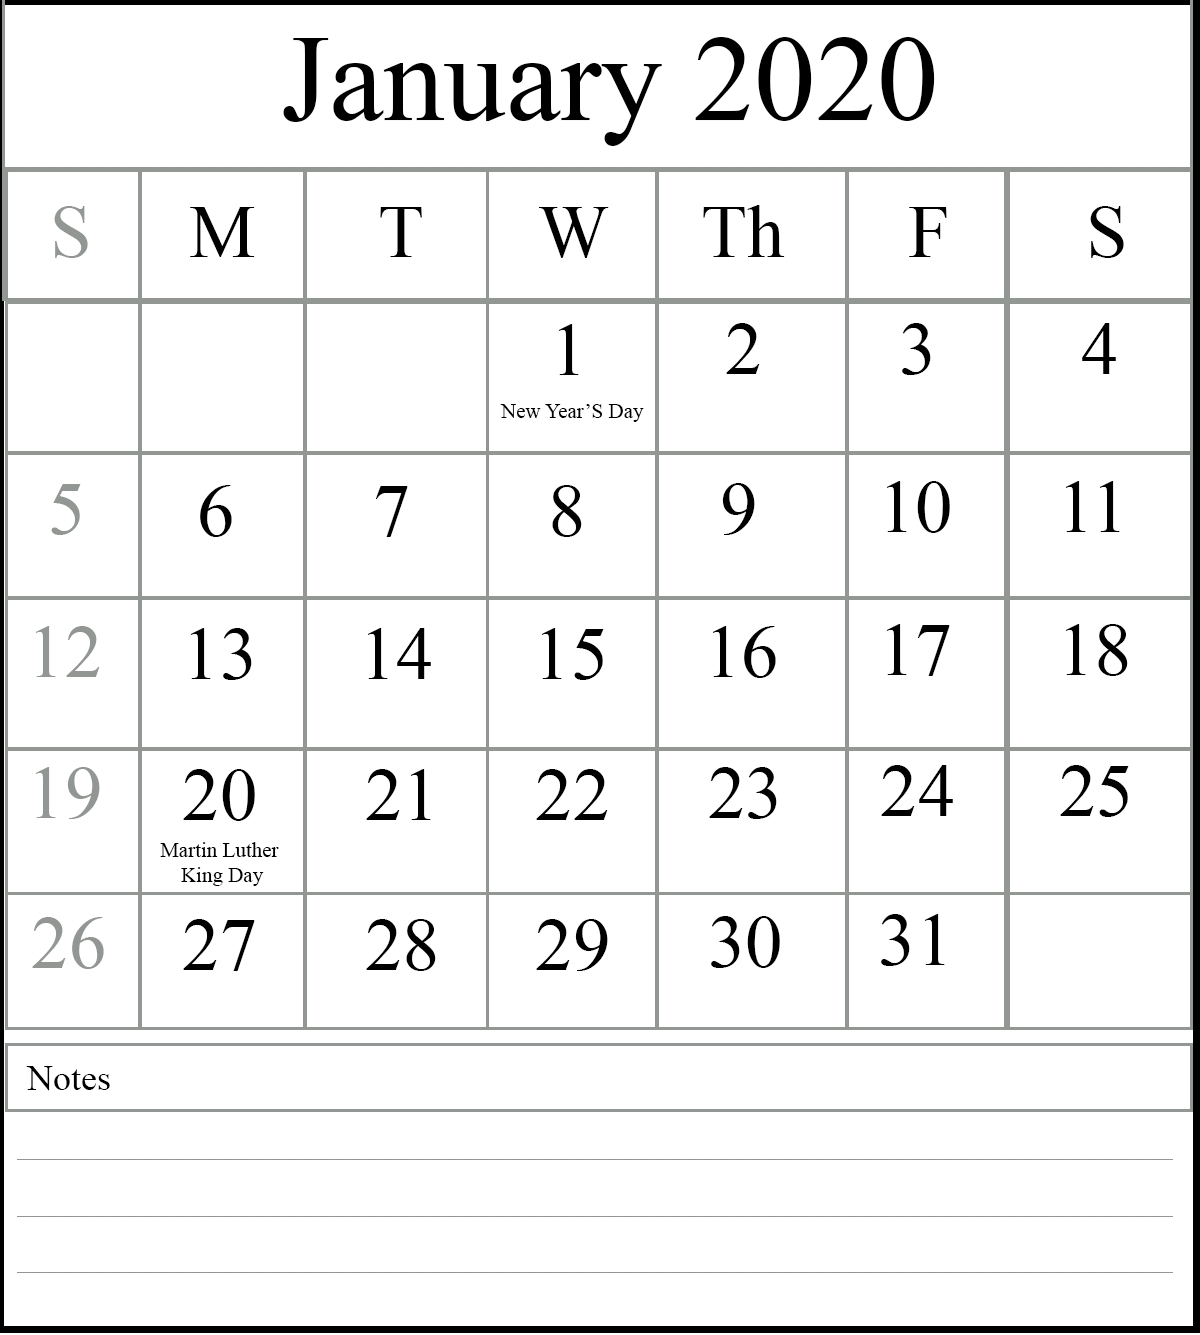 Optimum Calendar January 2020 With Holidays * Calendar-January 2020 Calendar Waterproof